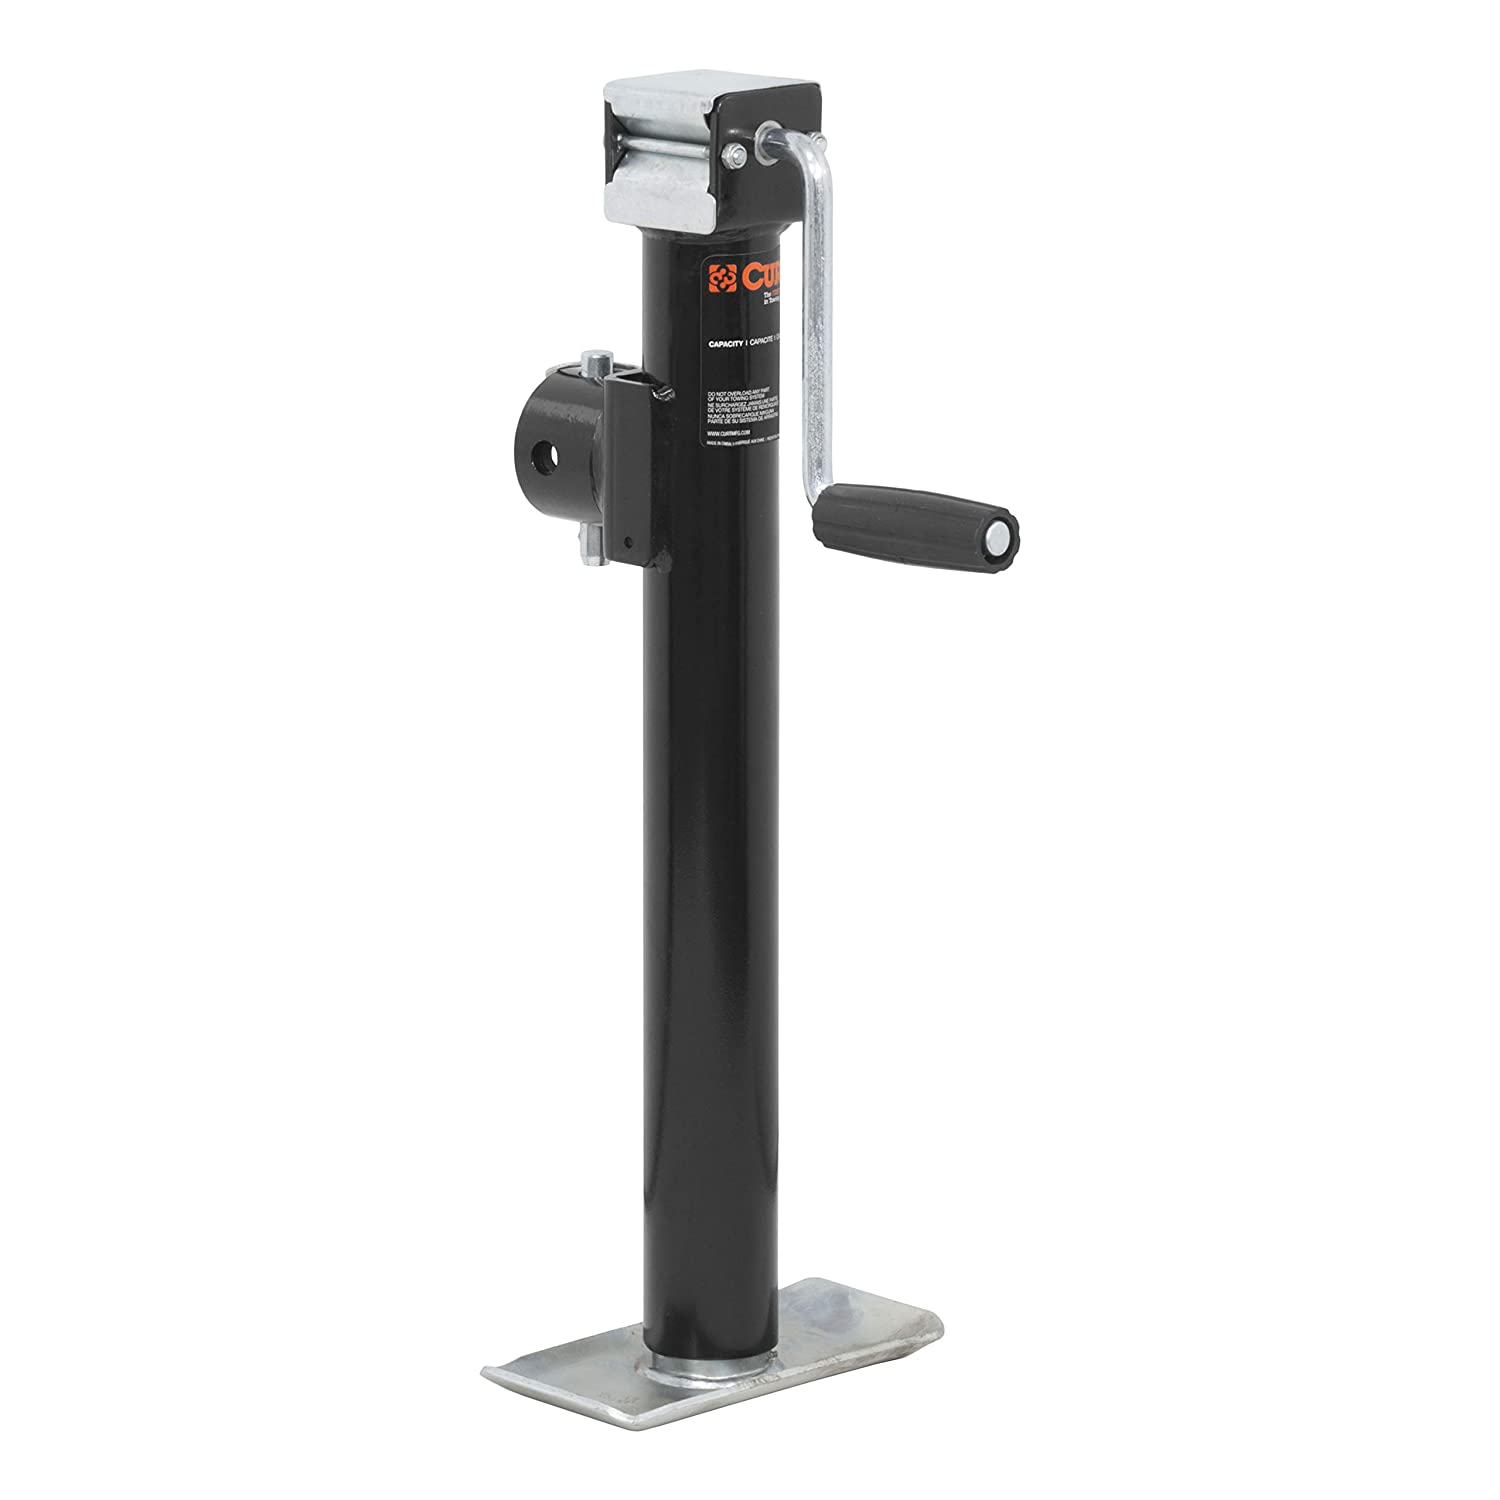 CURT 28324 Weld-On Pipe-Mount Swivel Trailer Jack 2,000 lbs 15 Inches Vertical Travel